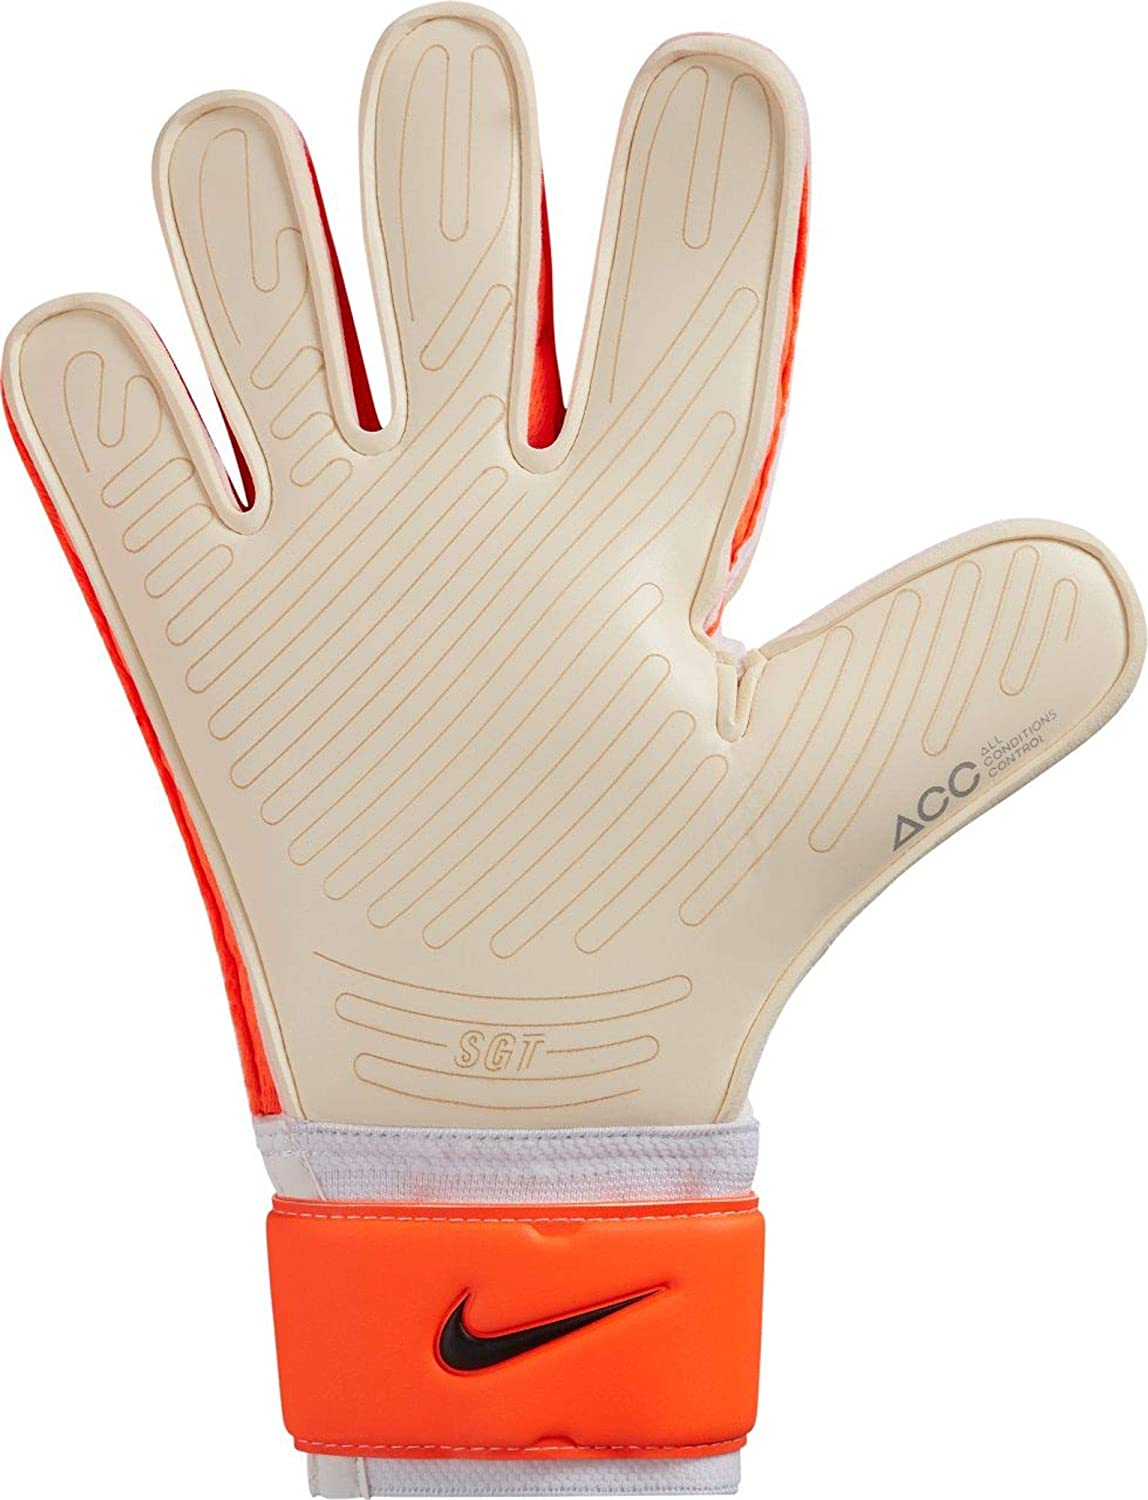 cráneo Compadecerse Ciudad  Nike Men's Sgt Premier Goalkeeper Gloves: Amazon.co.uk: Clothing